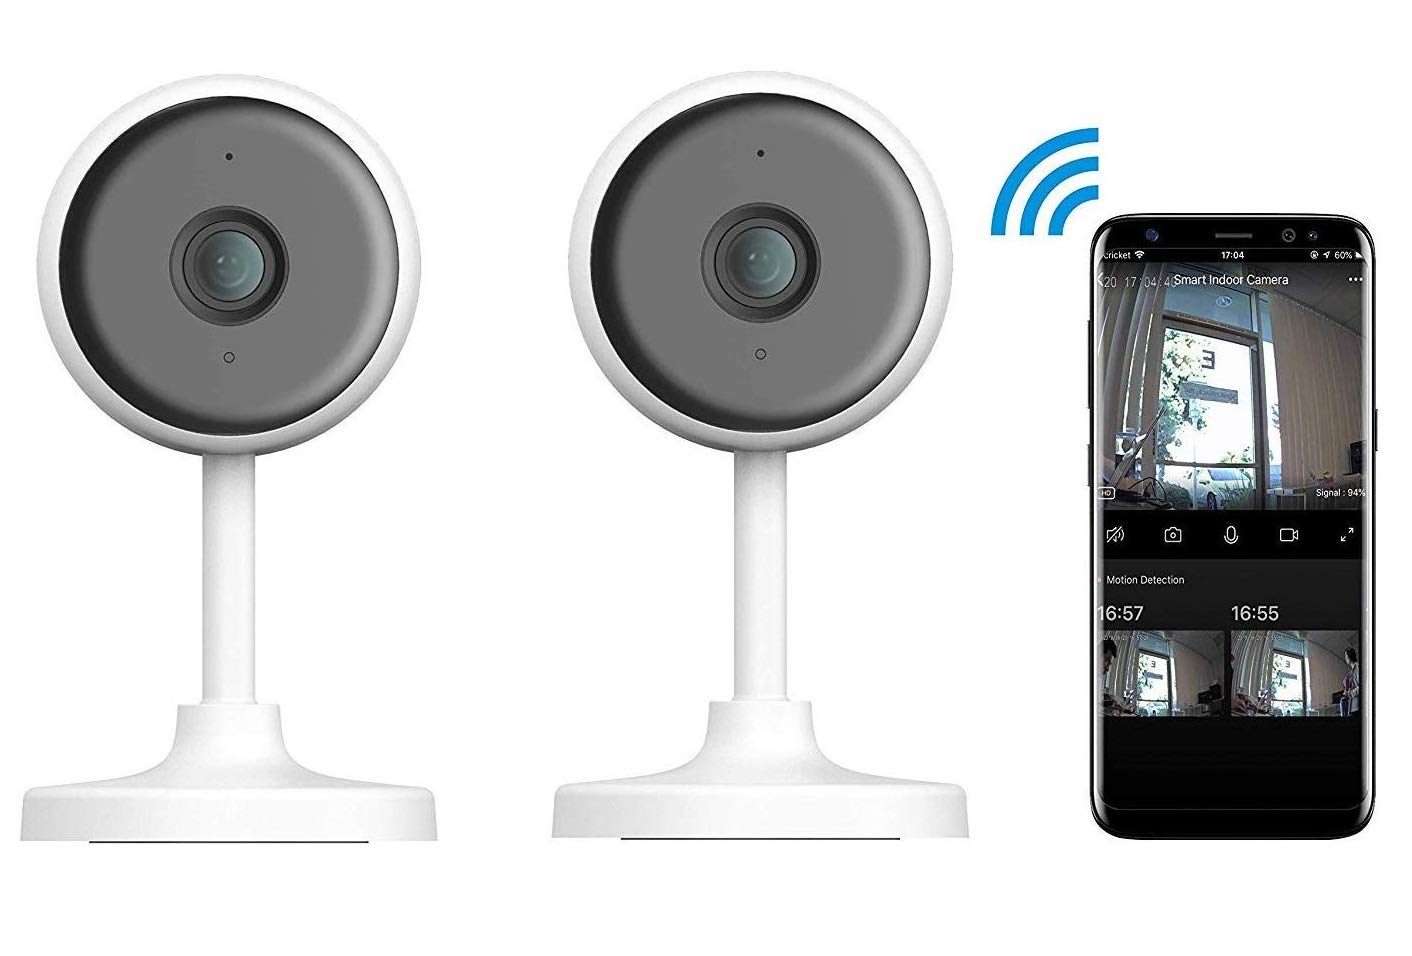 eco4life 1080p Indoor 2.4G WiFi Smart IP Camera with Night Vision, 2 Way Audio, 24/7 Motion Detection and Notification. (2-Pack)